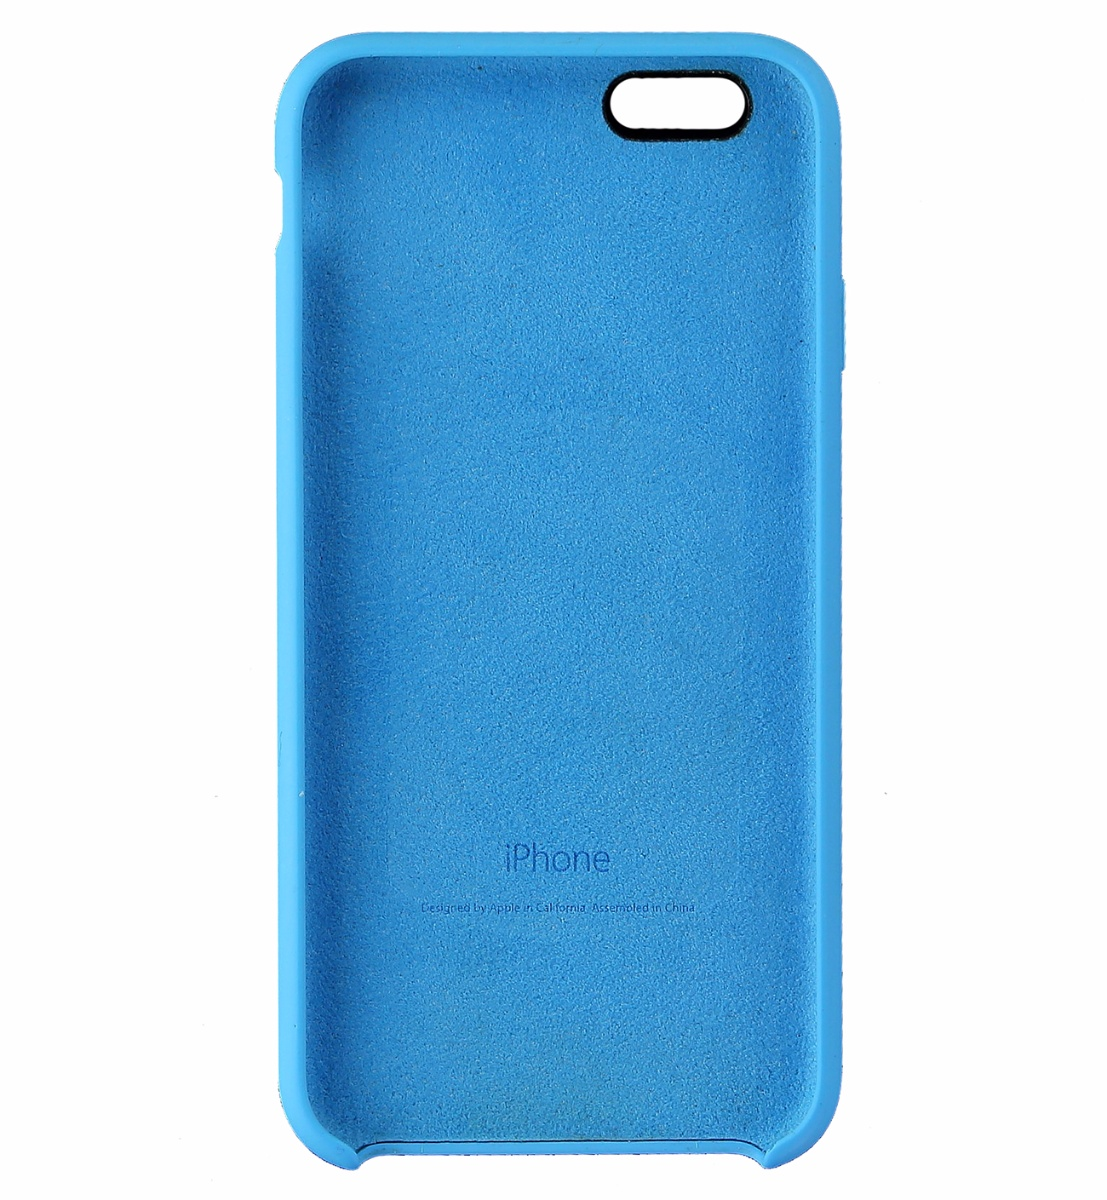 iphone 6 blue case